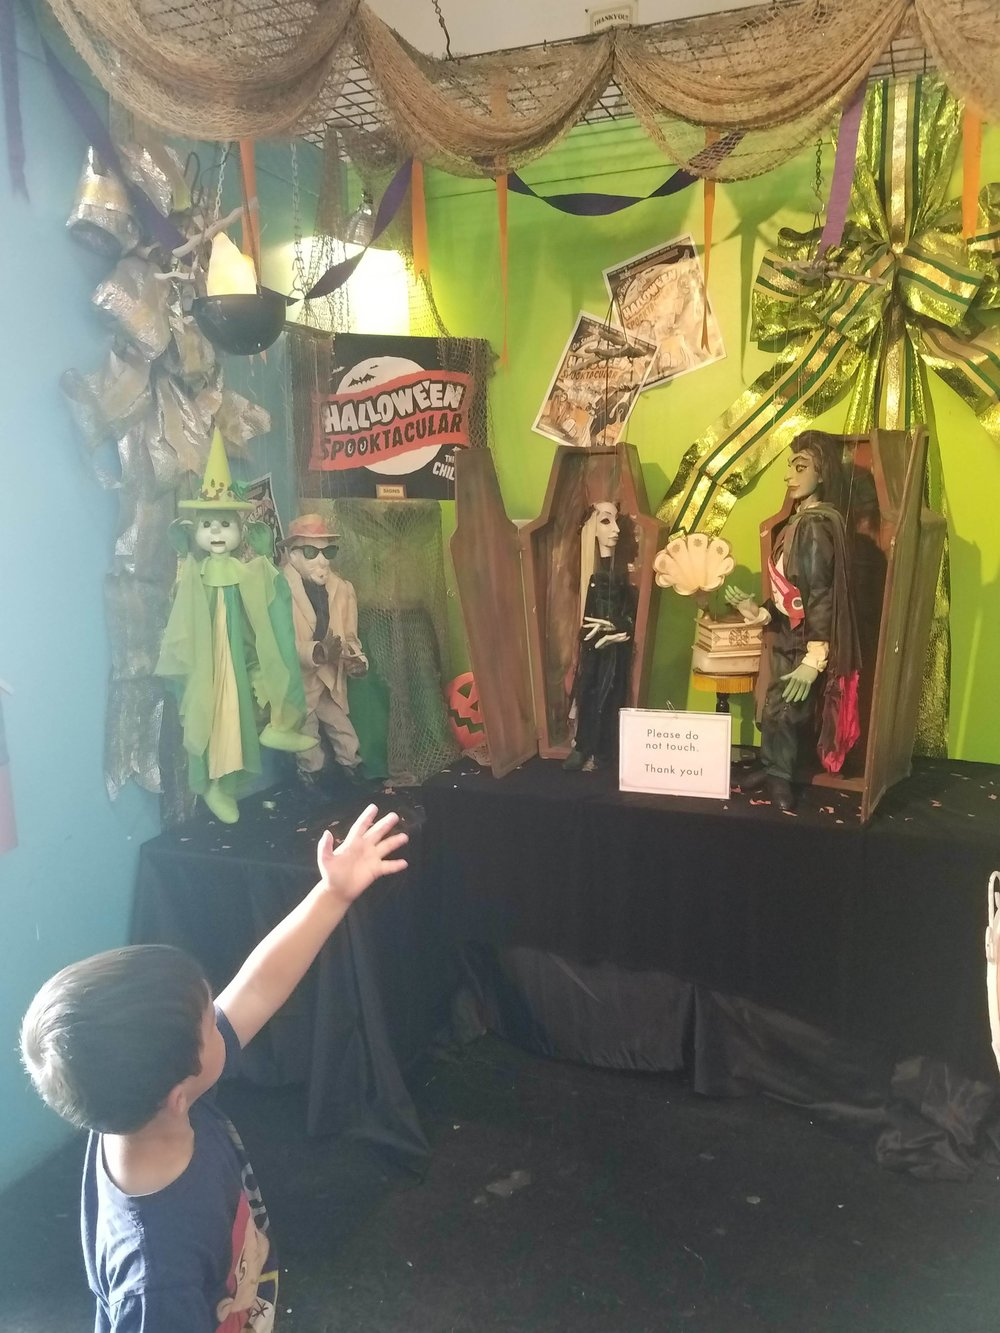 These puppets are set to perform at the Halloween Spooktacular.